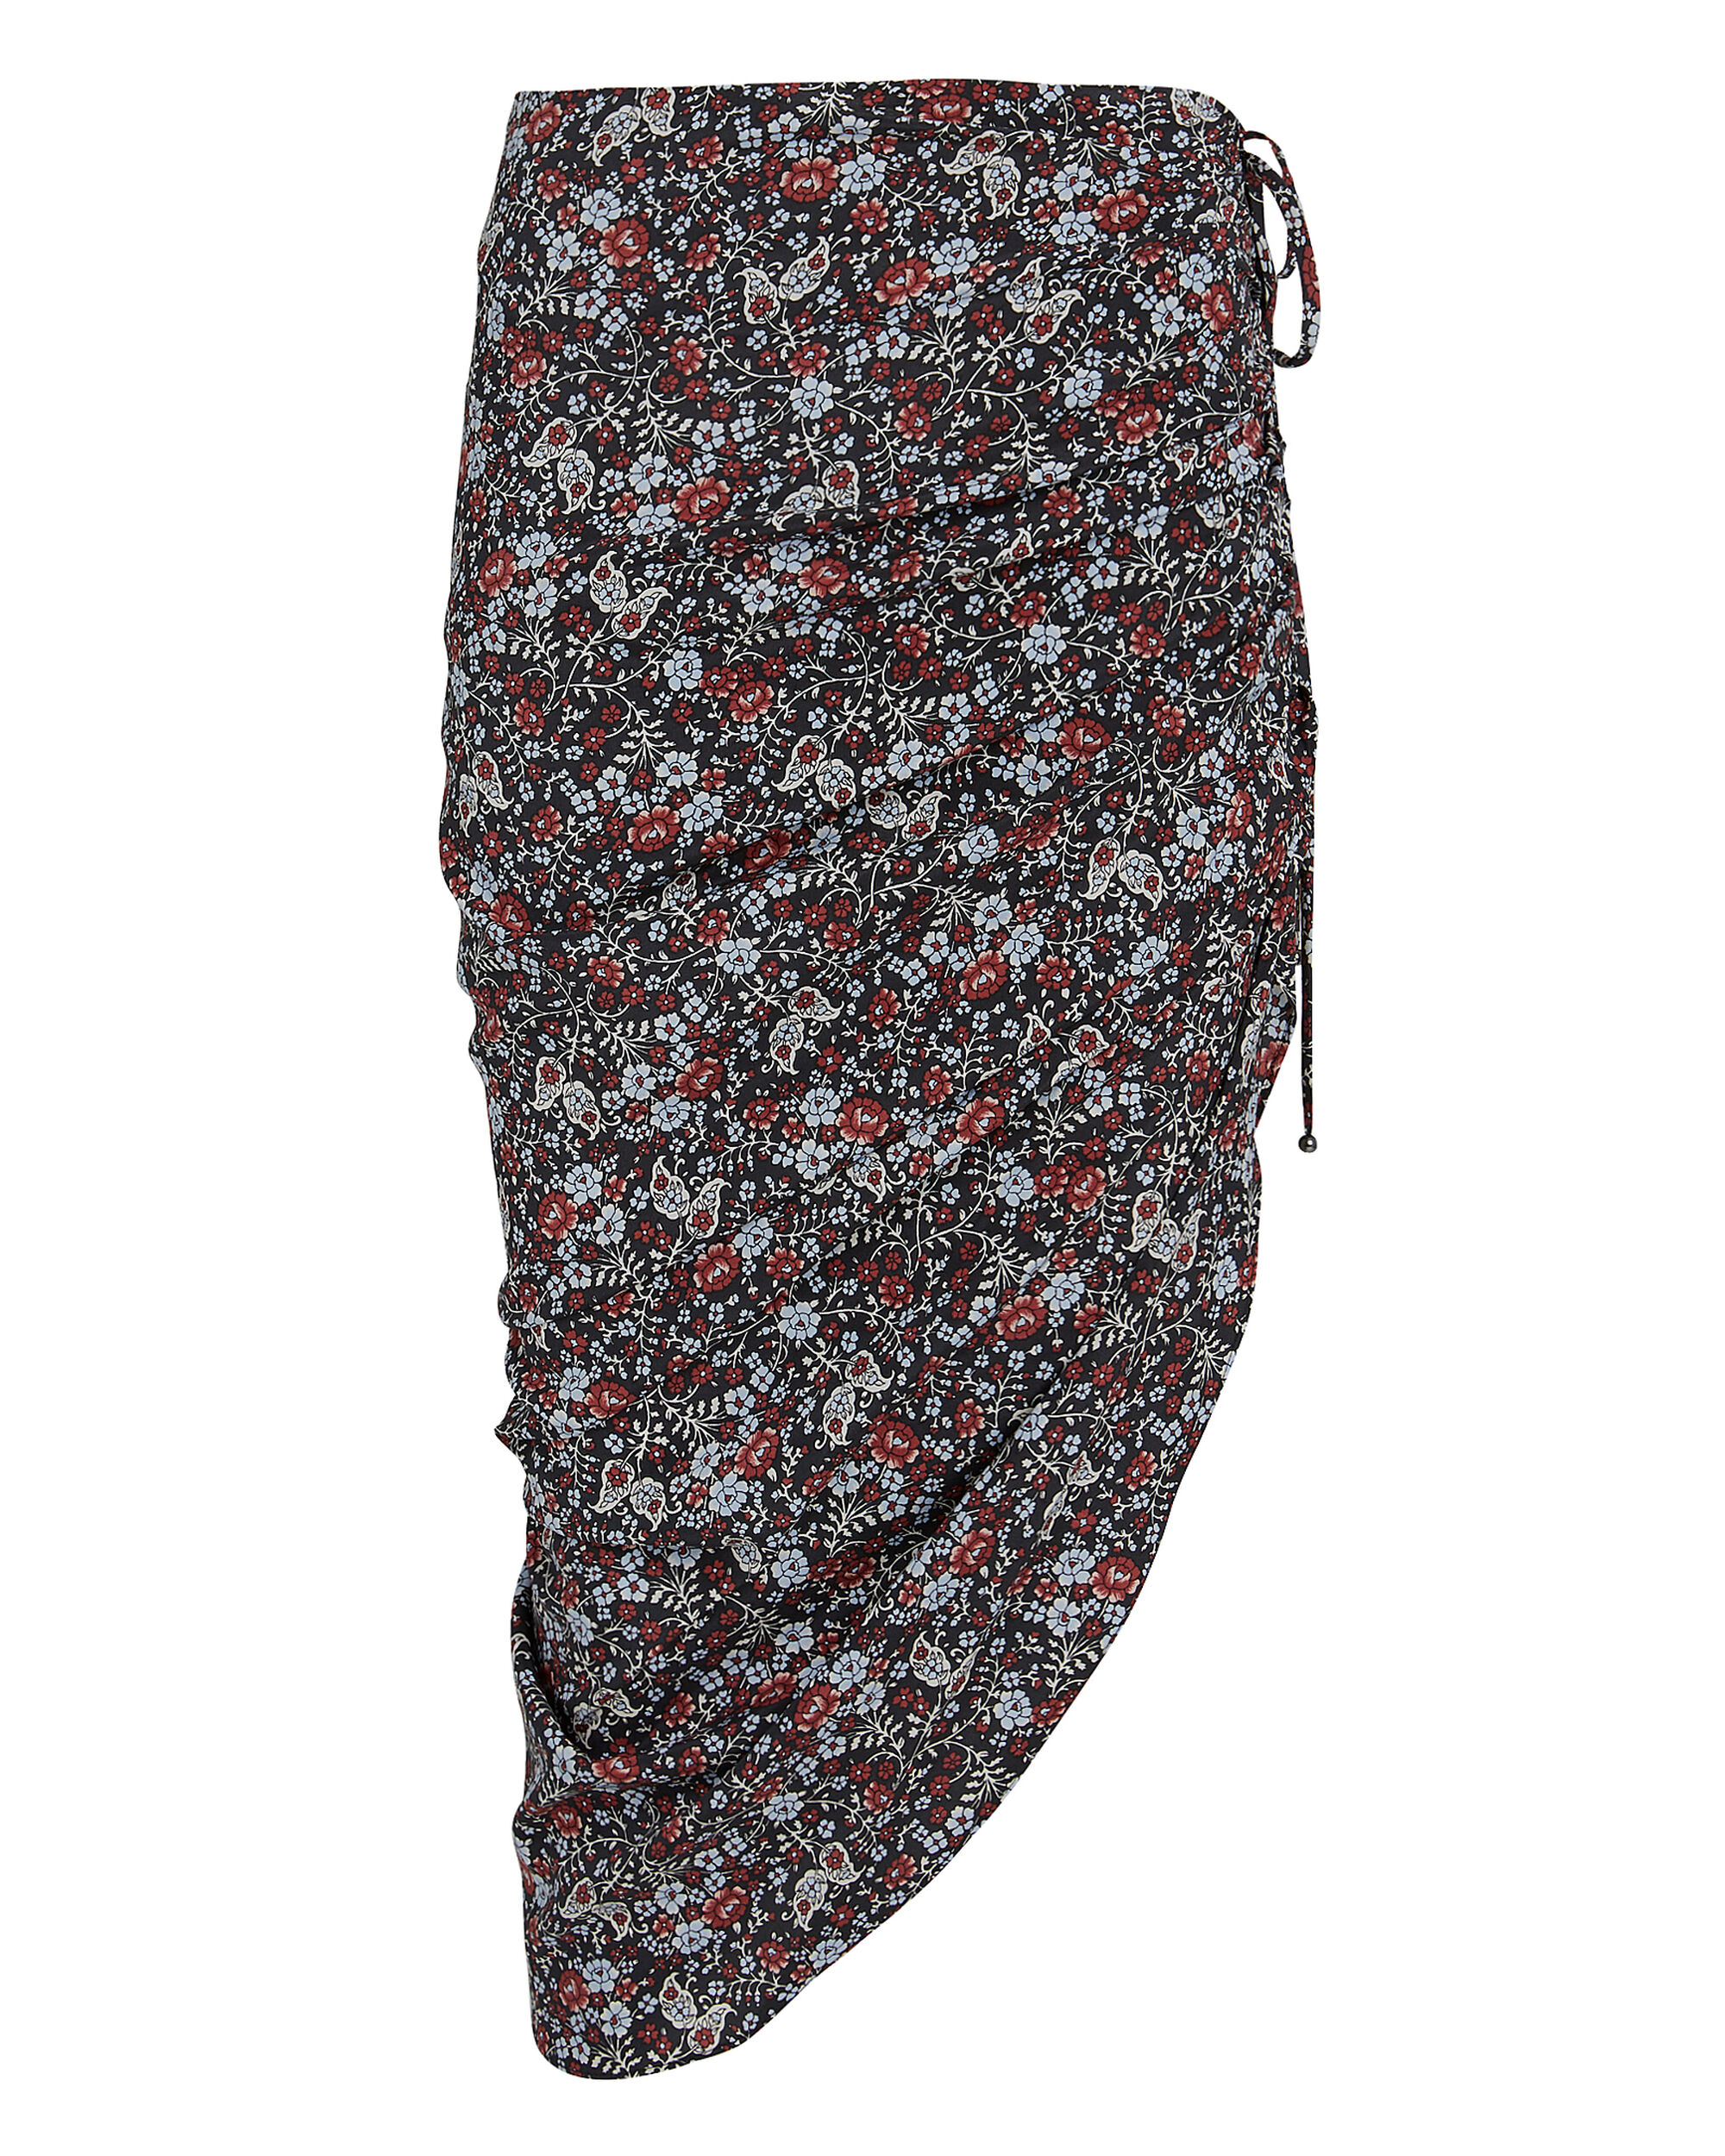 Ari Asymmetric Skirt, BLACK/FLORAL, hi-res